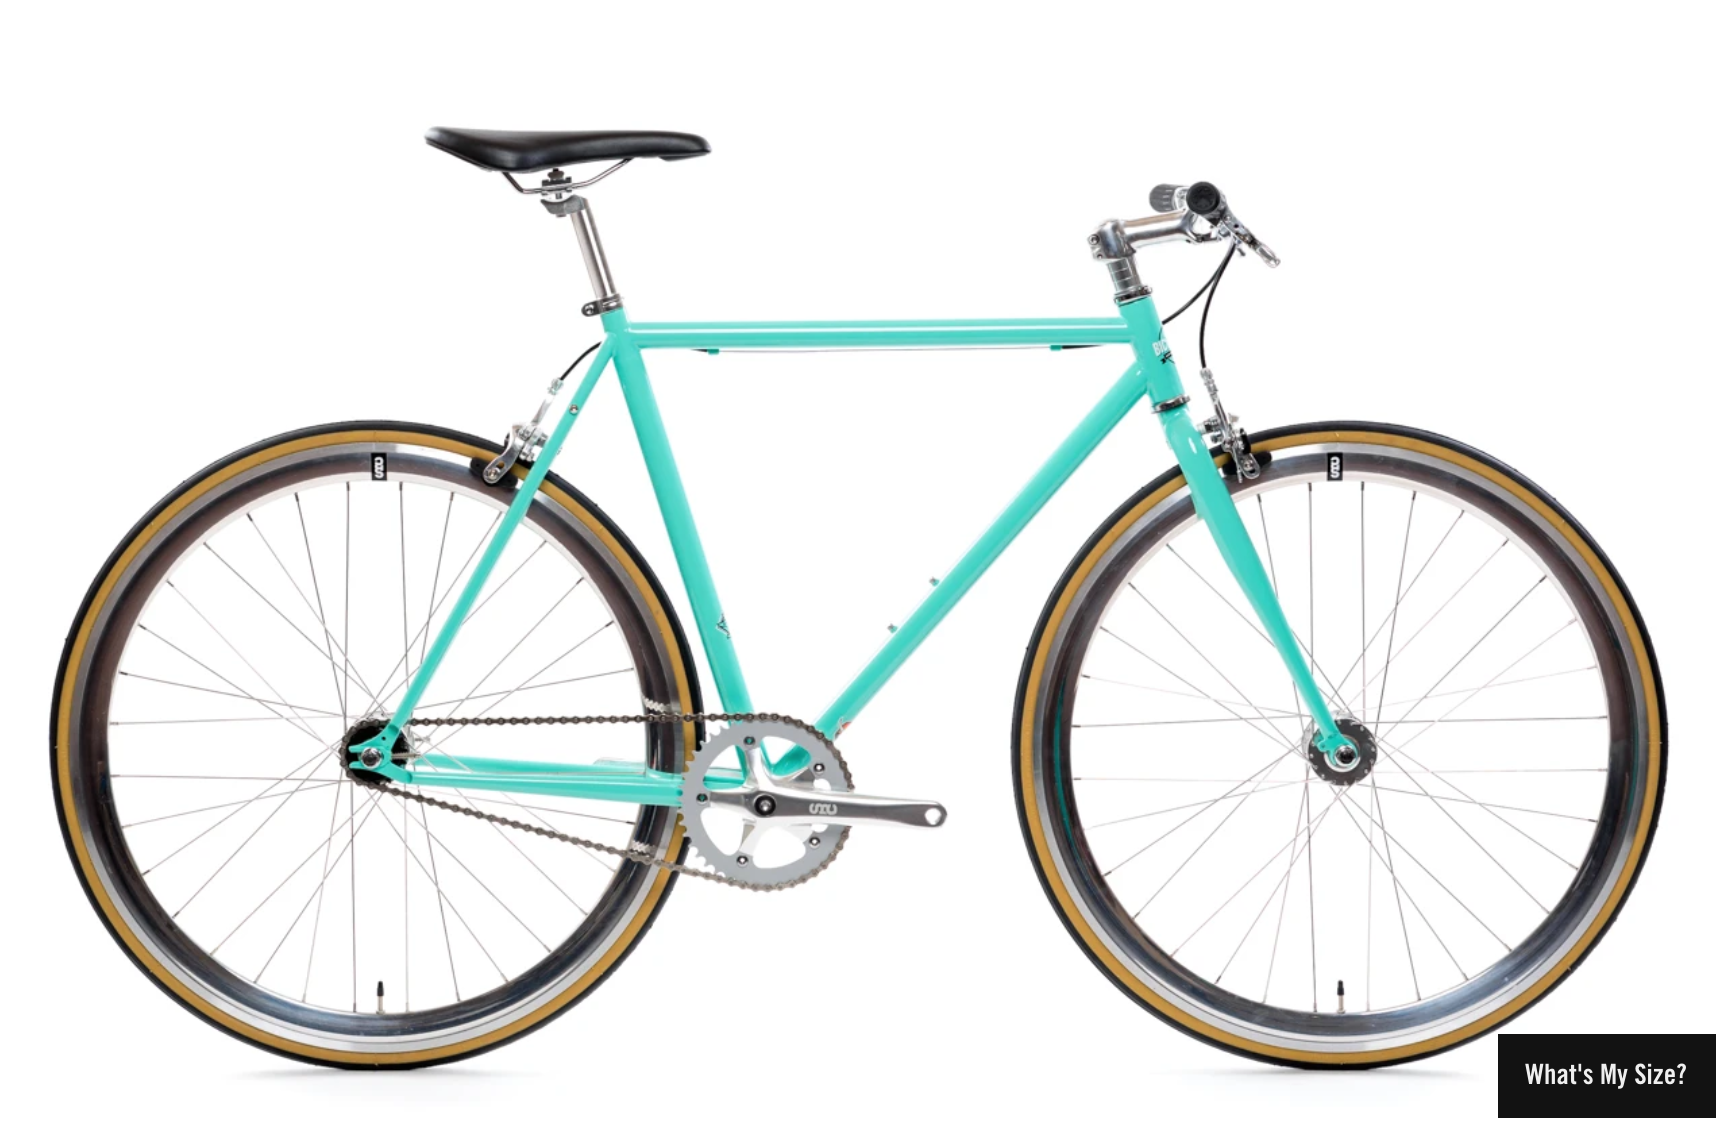 Image of teal colored bicycle